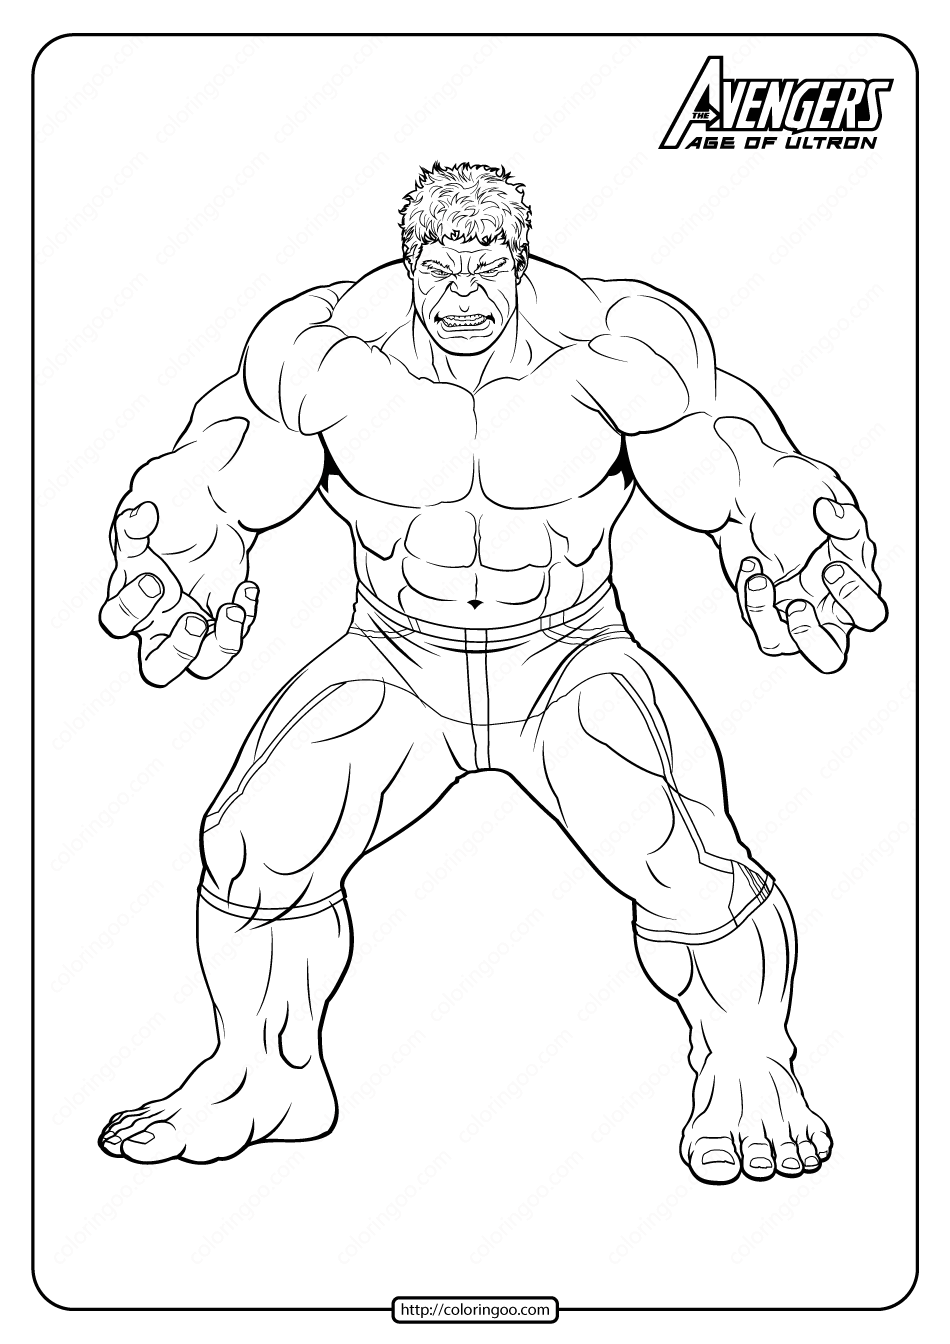 Lego The Hulk Coloring Page - Free Lego Coloring Pages ... | 1344x950